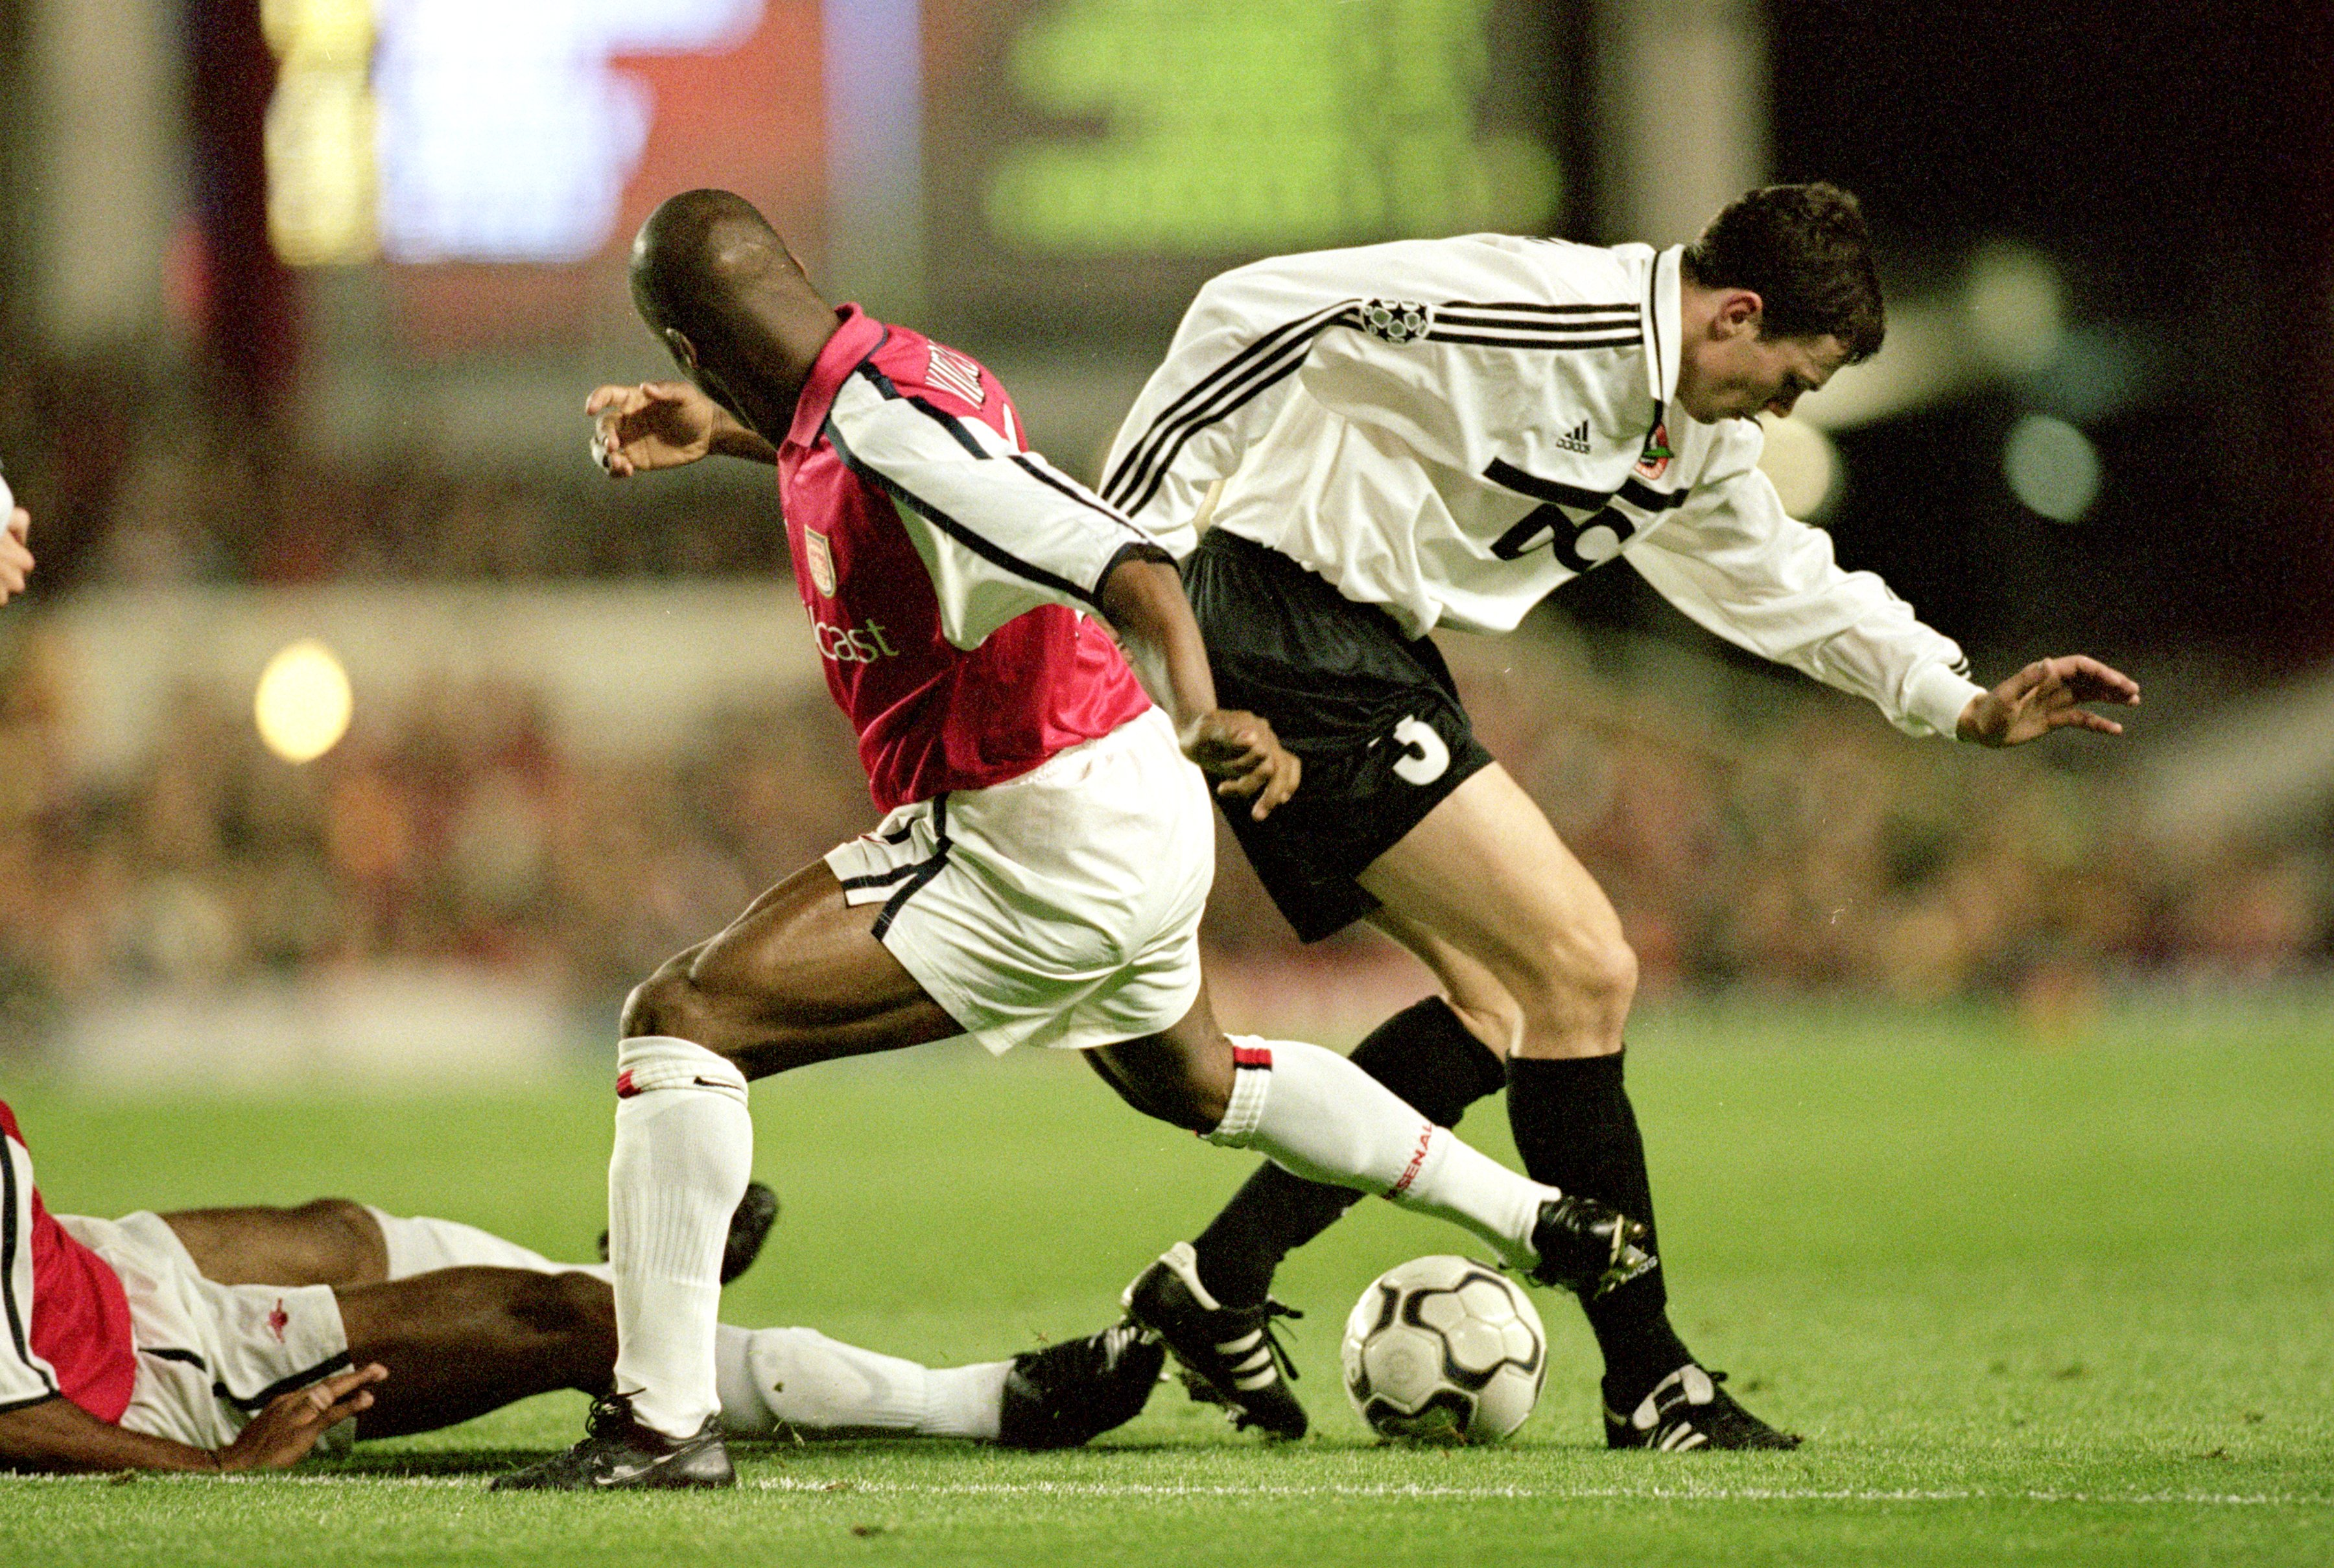 20 Sep 2000:  Dainius Gleveckas (#3) of Shakhtar Donetsk is challenged by Sylvain Wiltord of Arsenal during the UEFA Champions League match at Highbury in London.  Arsenal won the match 3-2. \ Mandatory Credit: Dave Cannon /Allsport